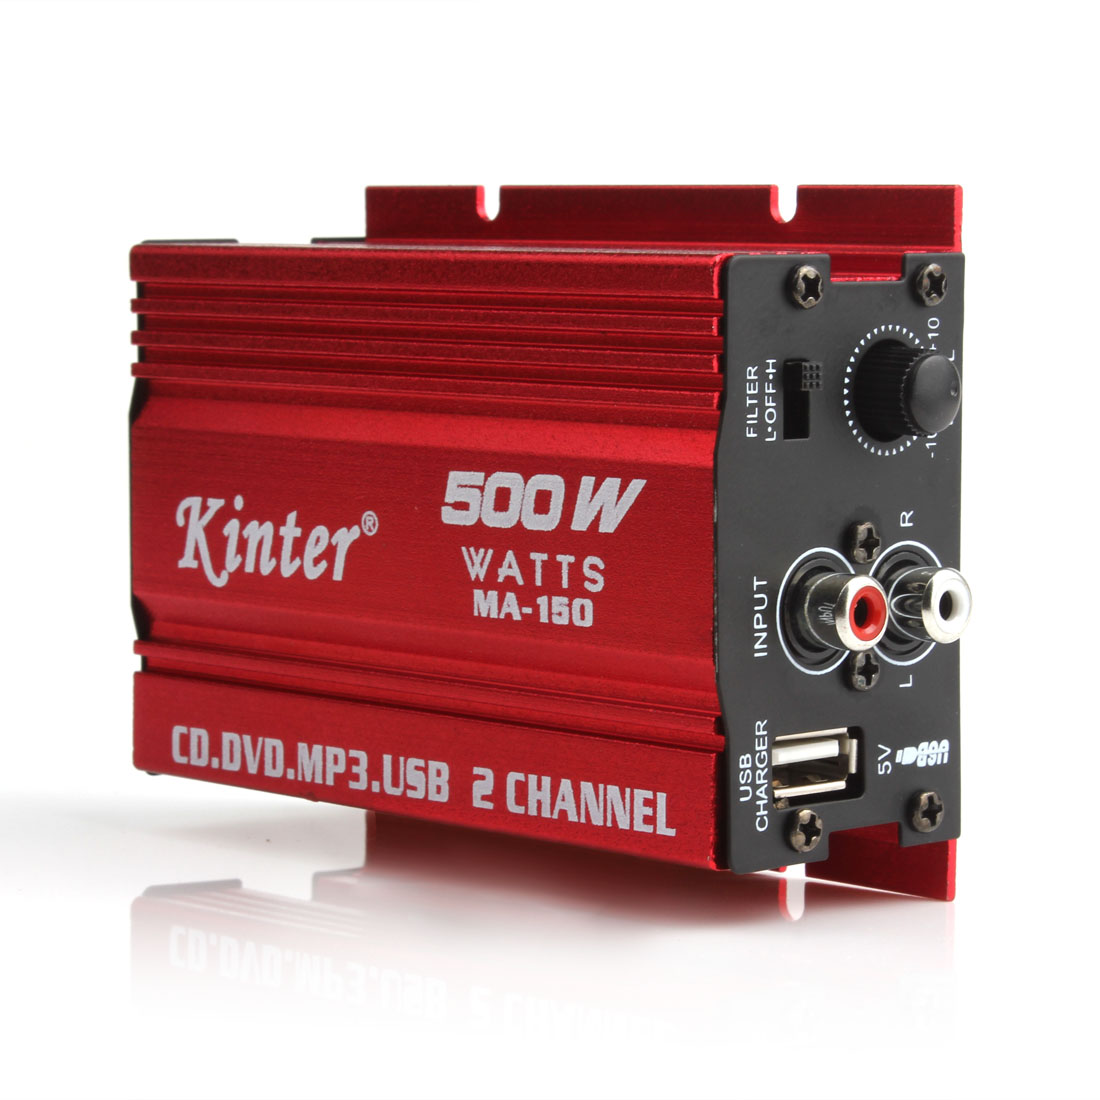 Mini-Hi-Fi-500W-2-Channel-Stereo-Audio-Amplifier-For-Car-Motorcycle-Home-New thumbnail 2